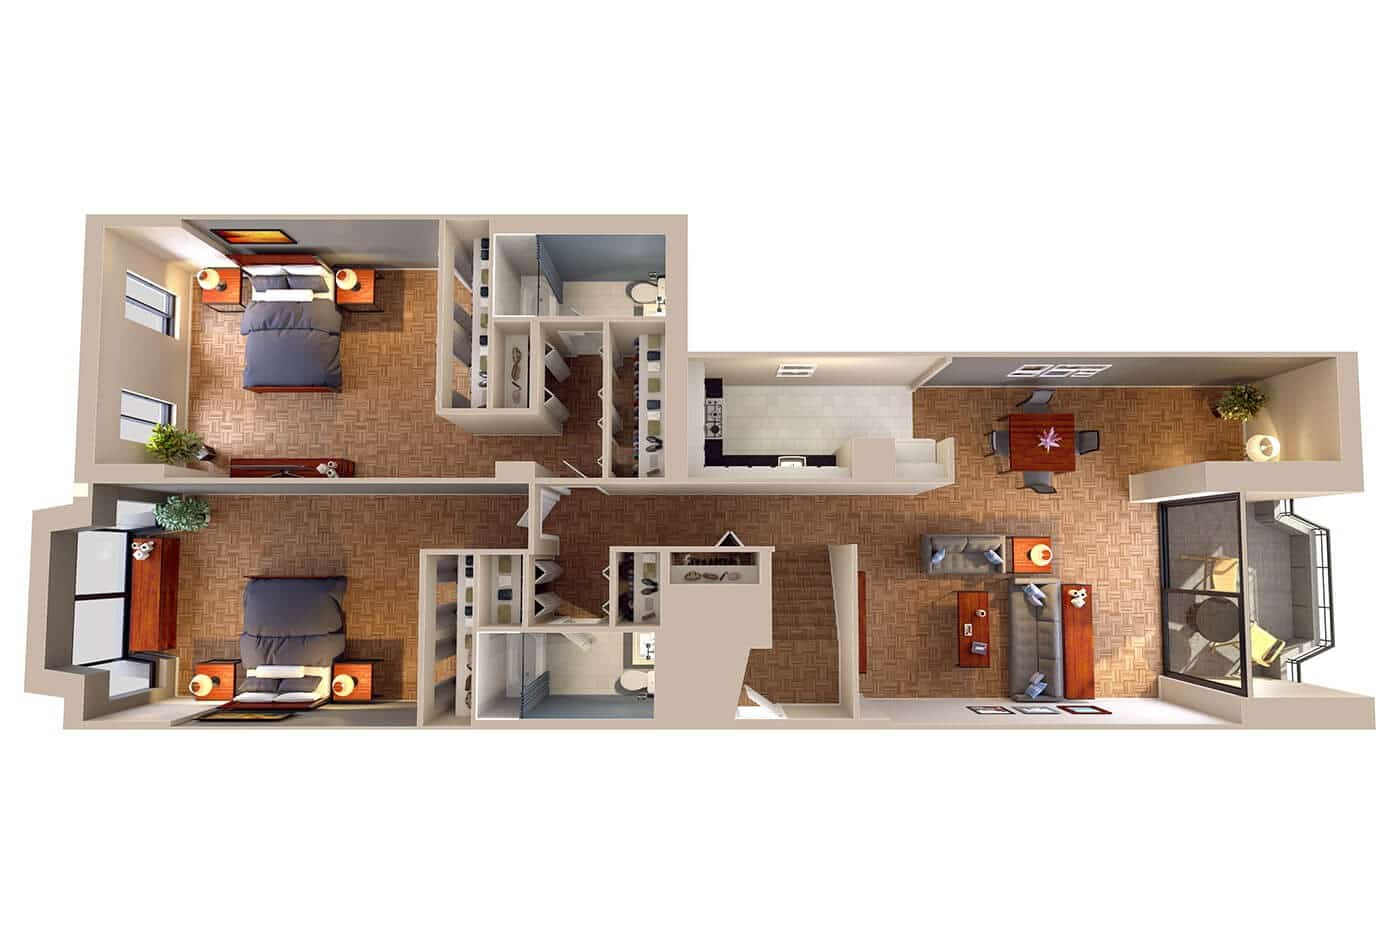 2 Bedroom Apartments All Utilities Included In Dc Home Design